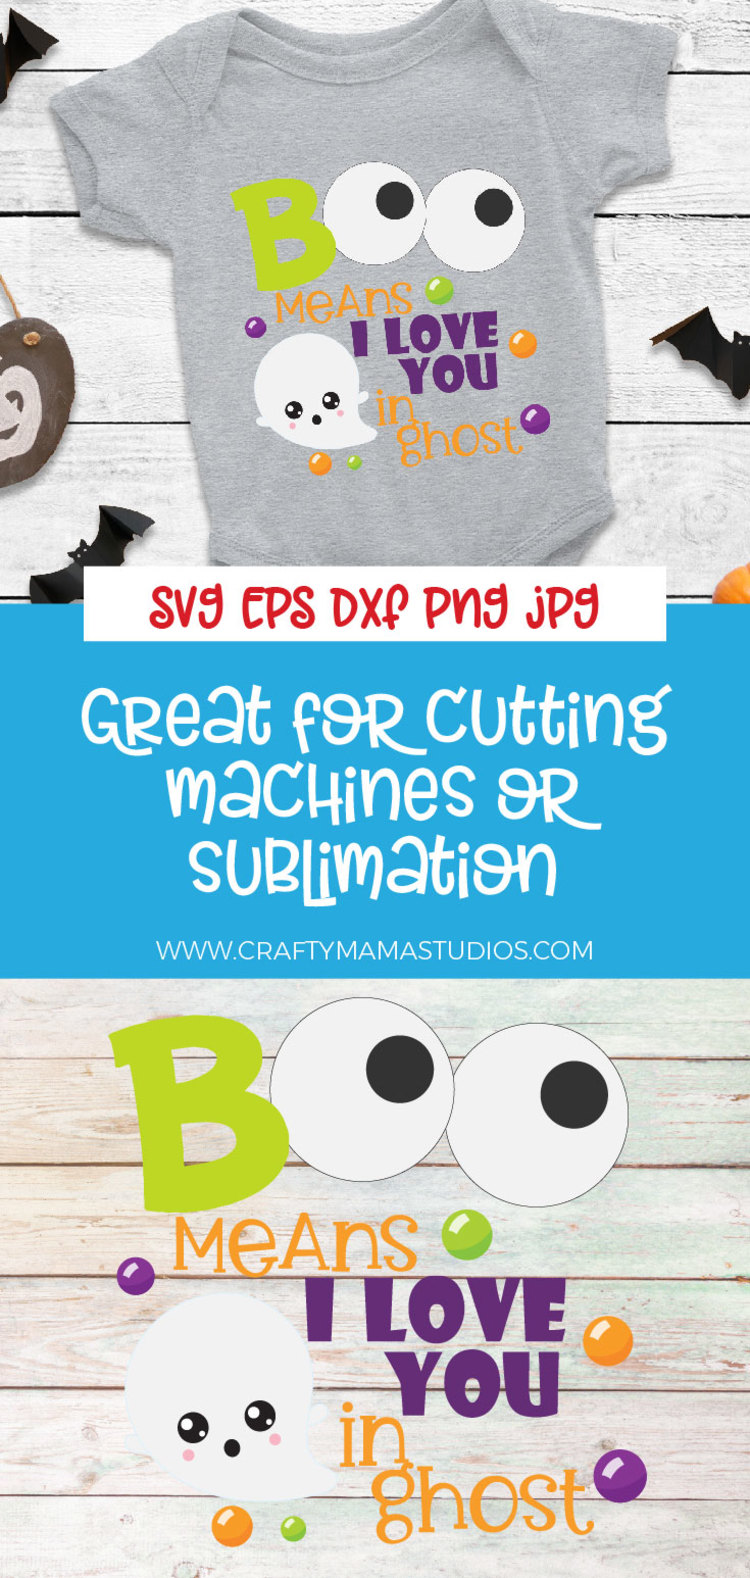 Boo Means I Love You In Ghost SVG Sublimation, Halloween SVG example image 3